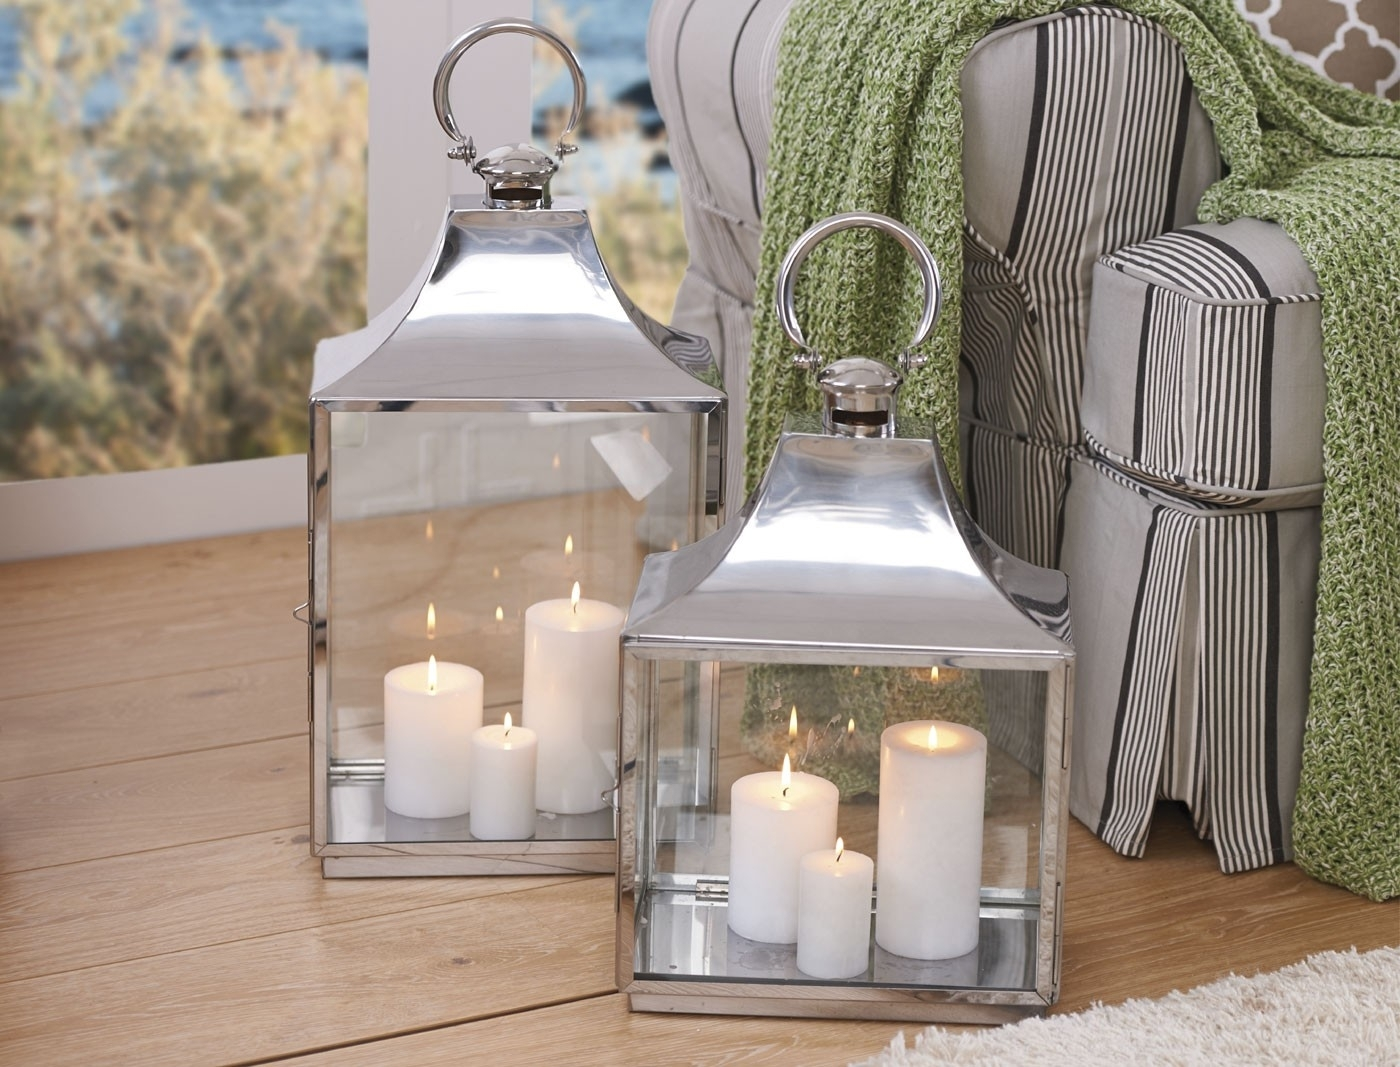 Household Pillar Candles - Ivory regarding Outdoor Lanterns and Votives (Image 11 of 20)